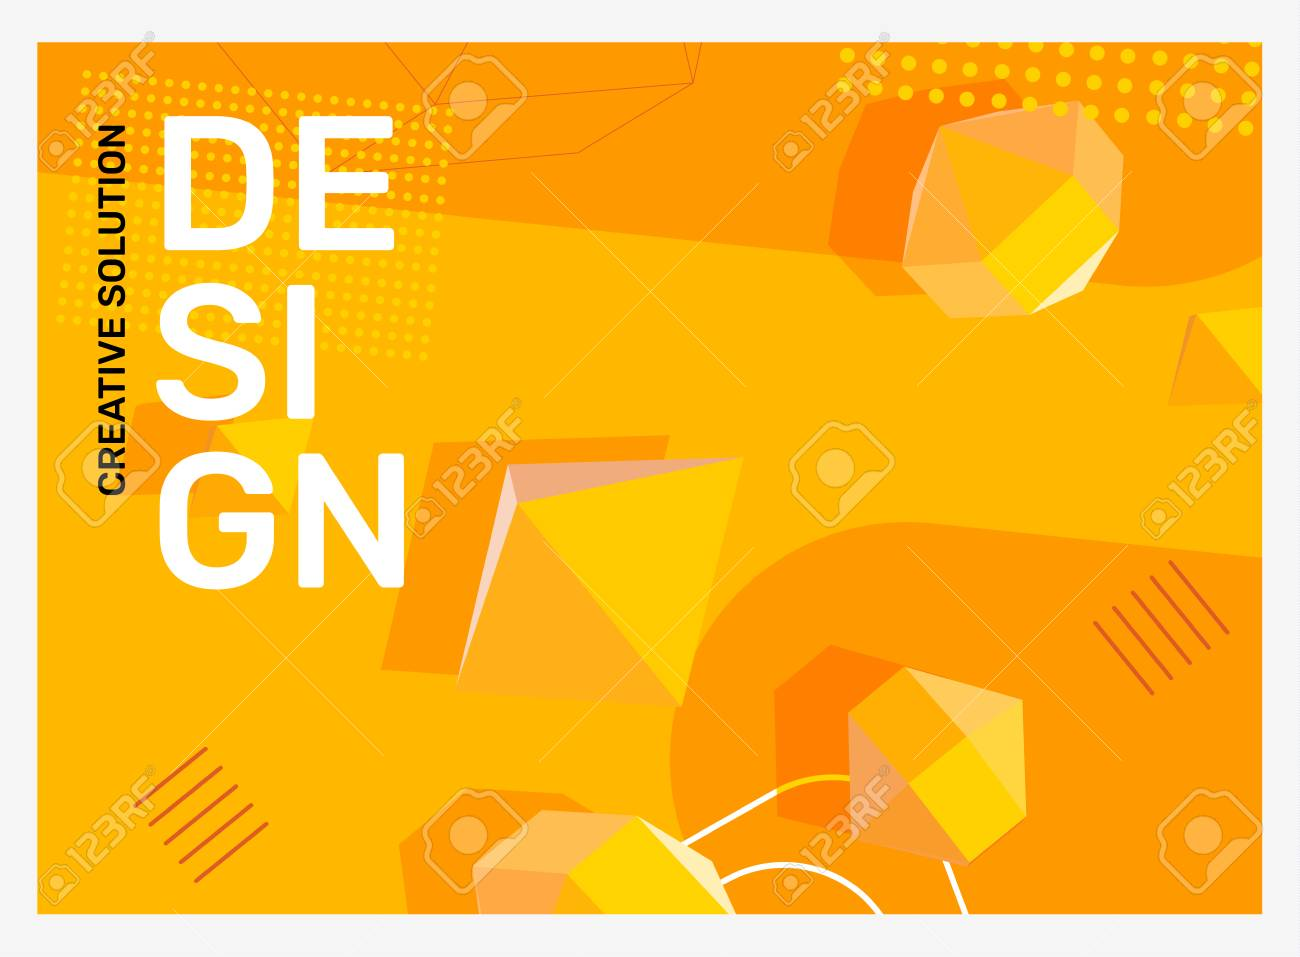 Vector creative bright yellow abstraction illustration in frame. Business abstract background with shape, 3d element, header. Template composition design for web, site, banner, print, poster, presentation - 124714656